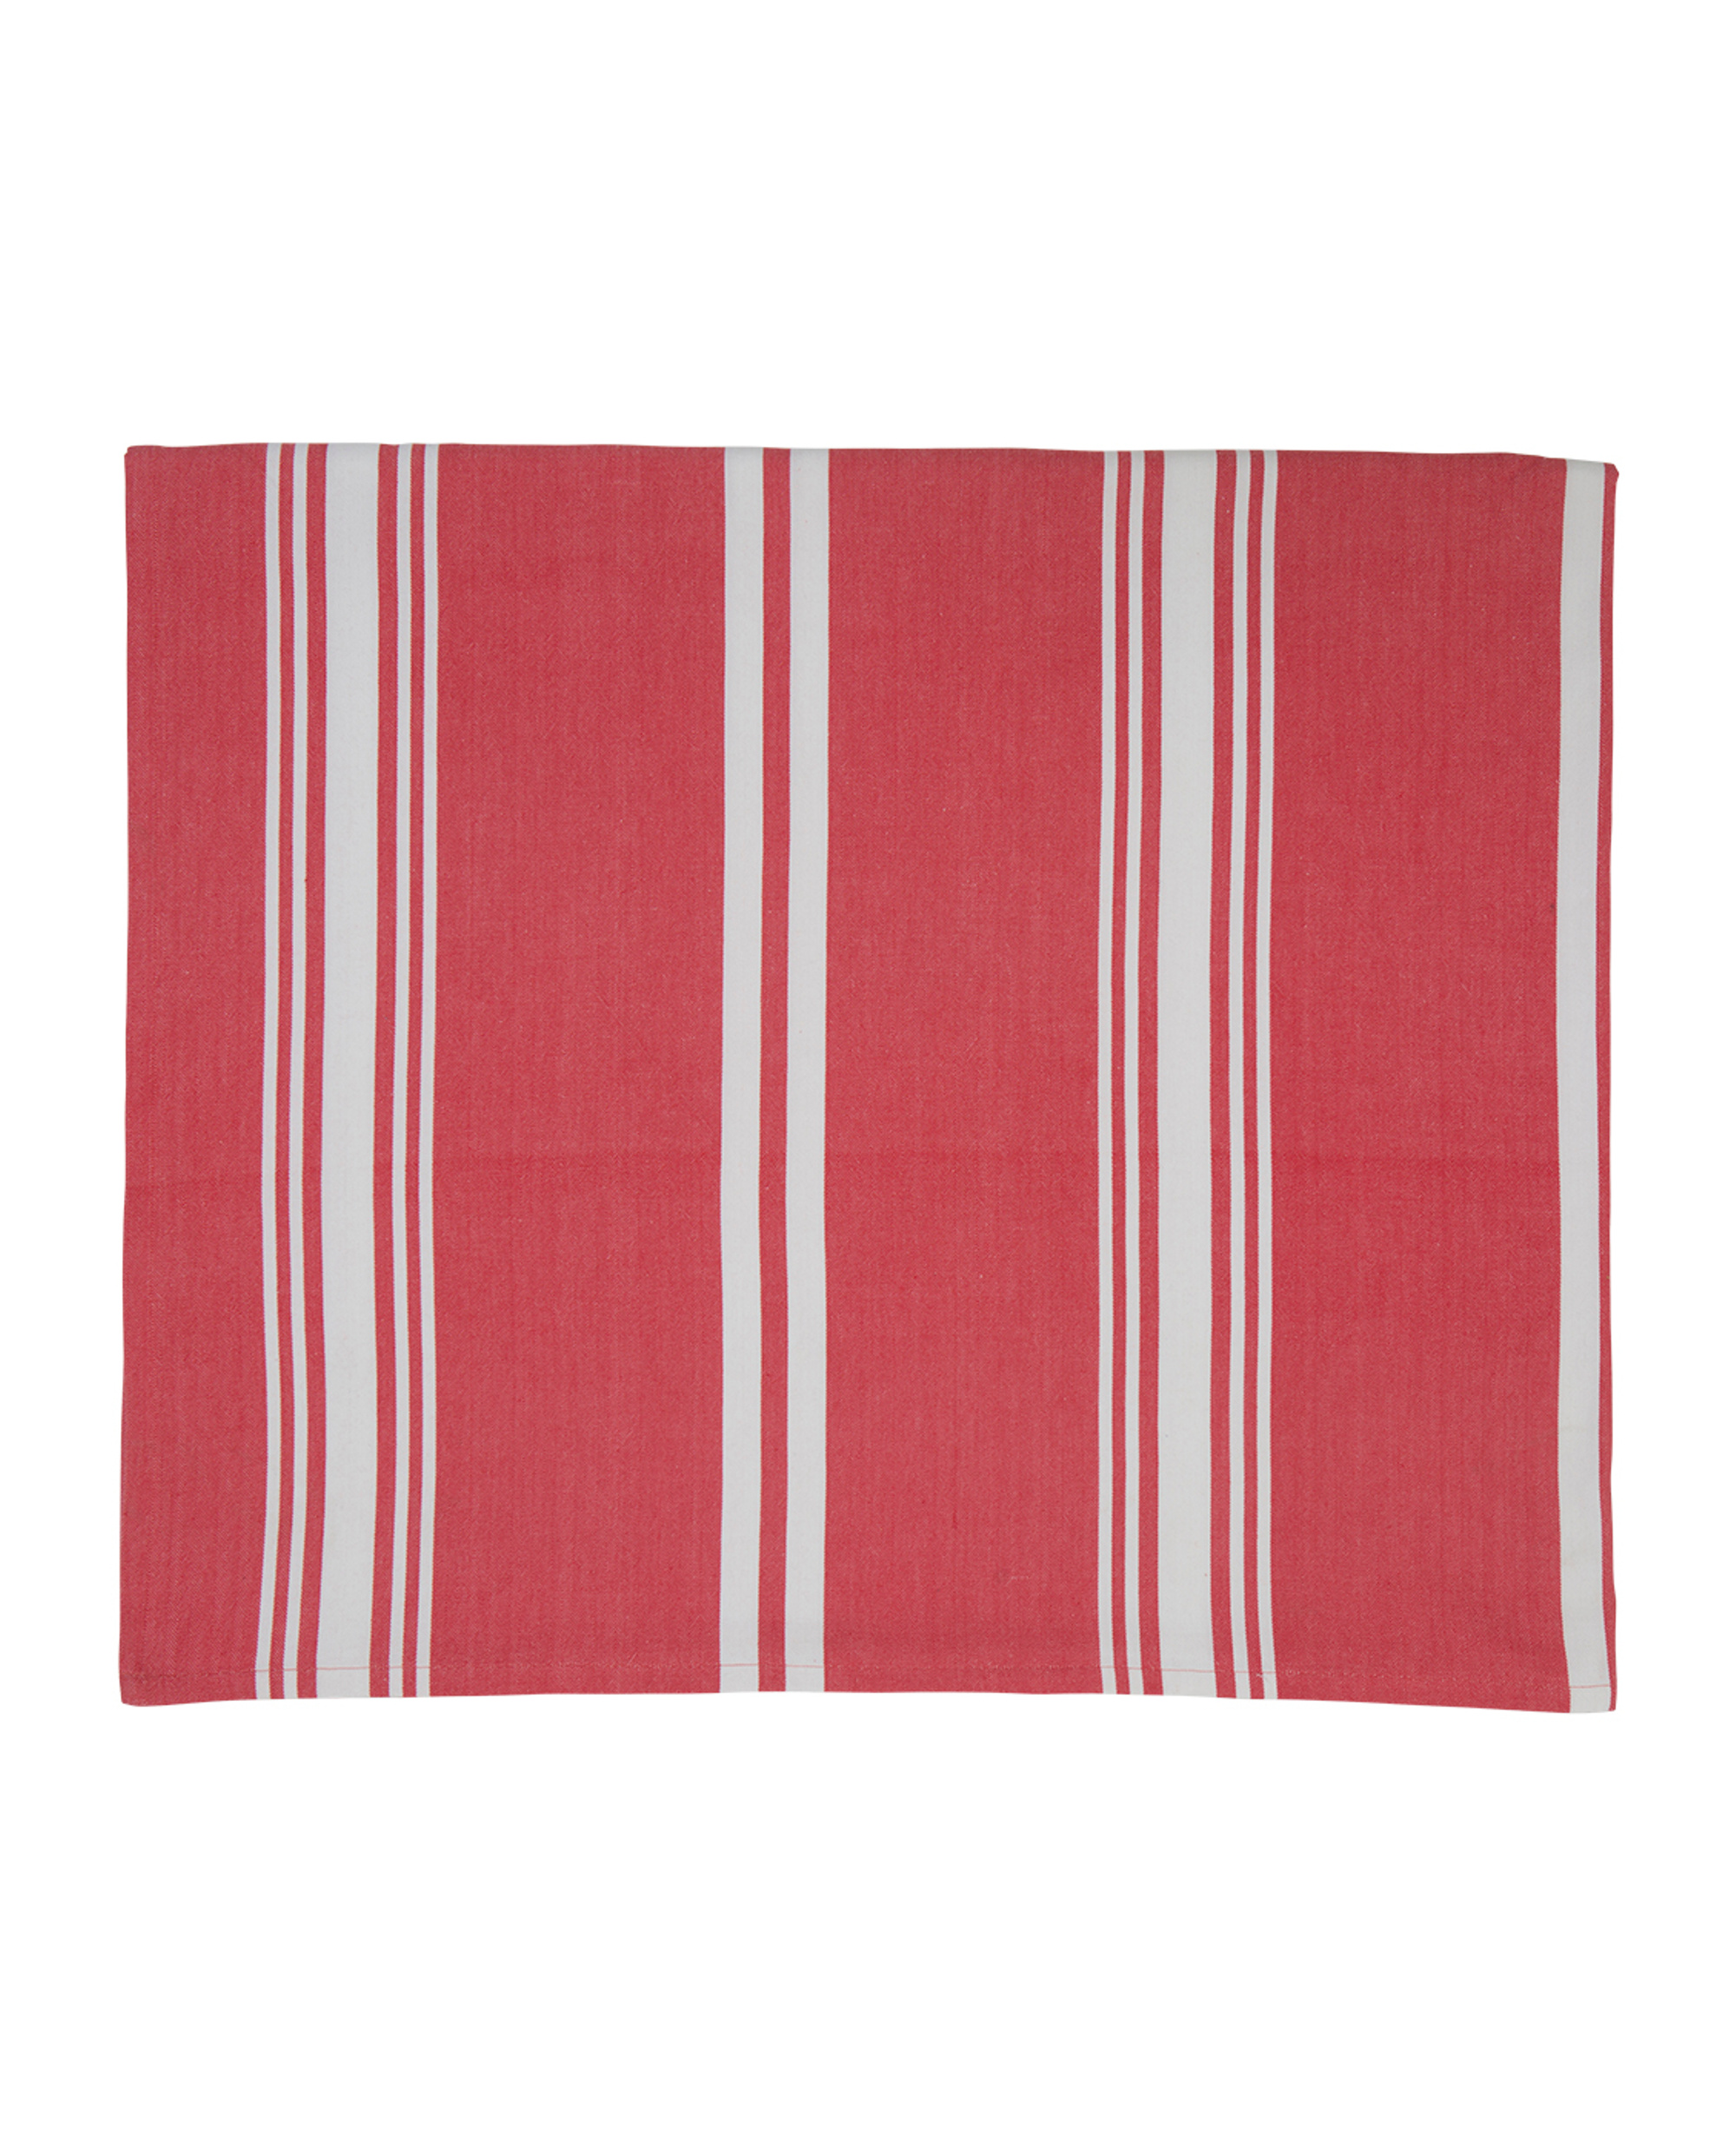 Striped Tablecloth, Red/White